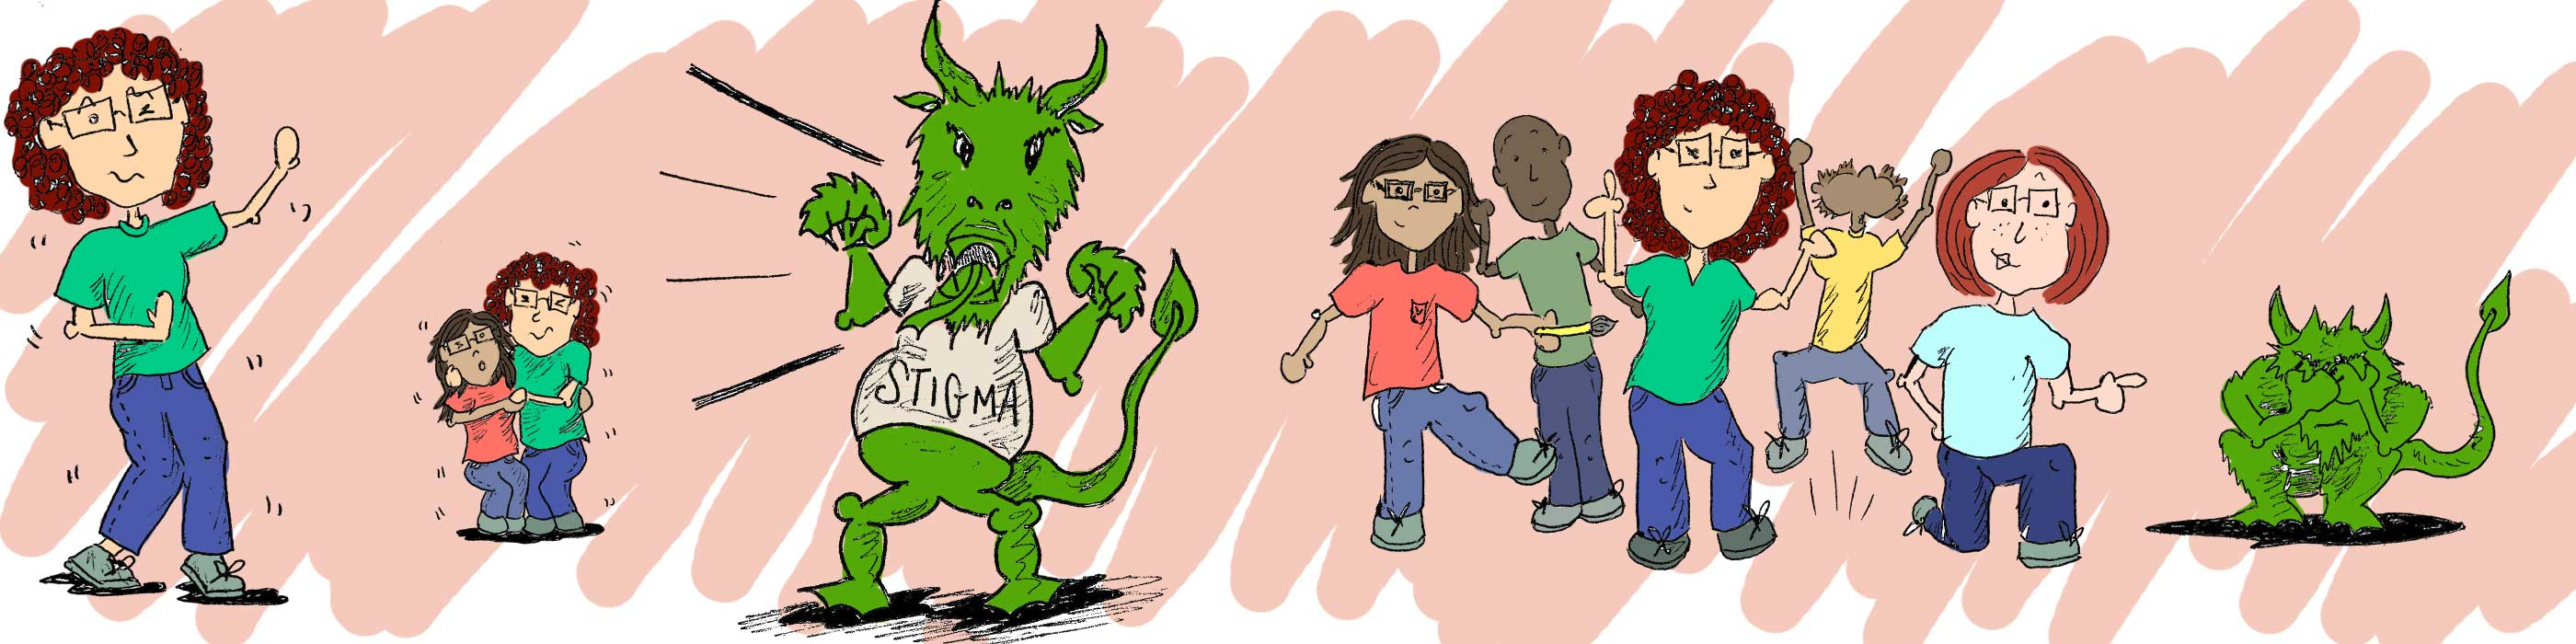 Suedle of The Committed Project founders hugging, dancing, and fighting the Stigma Dragon - what it's like having mental illness in your life